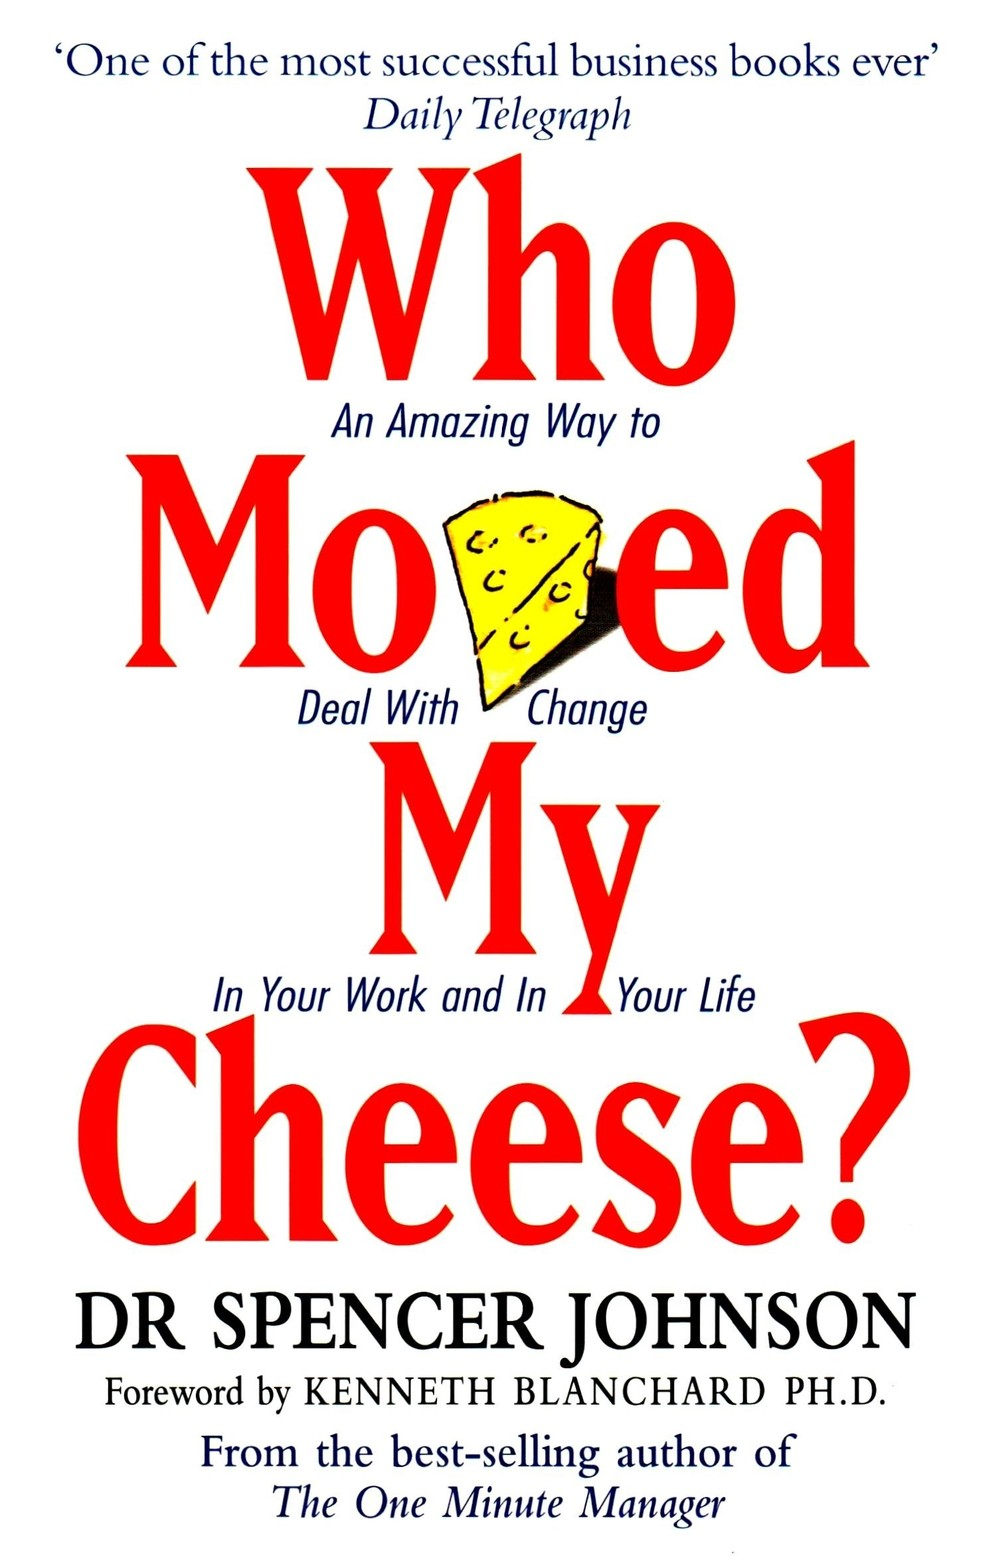 who-moved-my-cheese-original-imadjsaumfeygyzz.jpeg